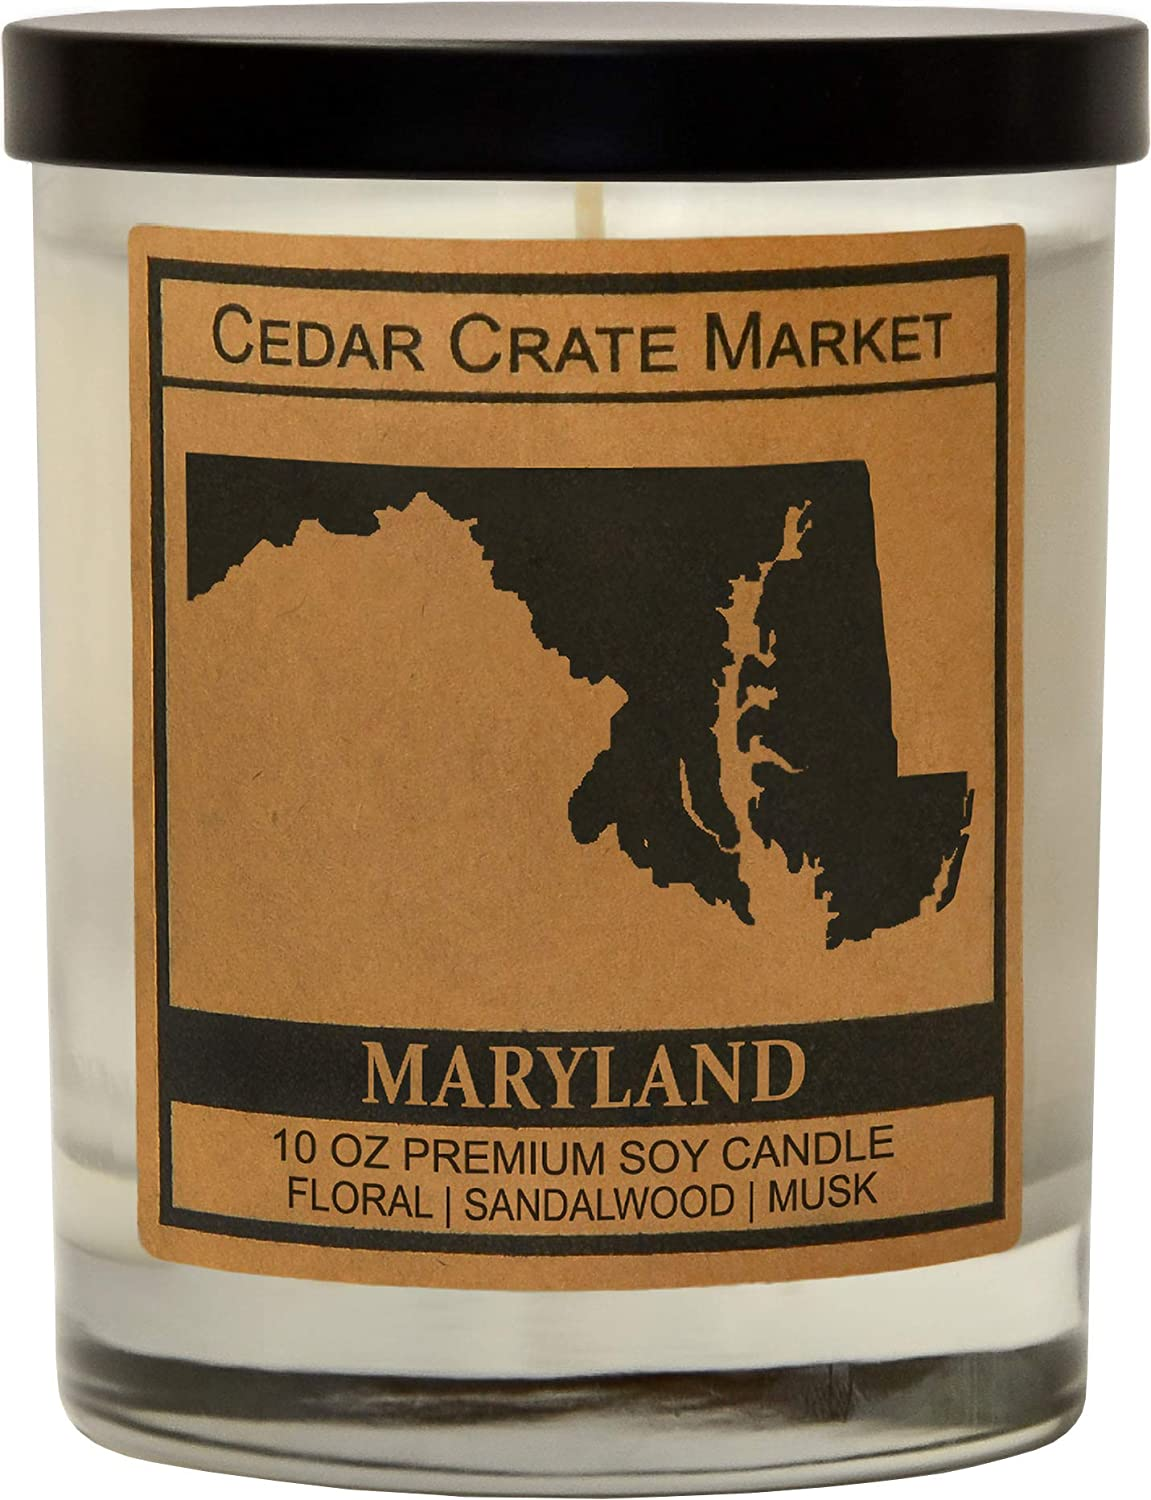 Maryland State Candle Gift, Show Your Home State Pride and Your Love for Your Hometown, Wherever You May be, Our State Candle Will Remind You of Home,House WarmingGifts for New Home,USA